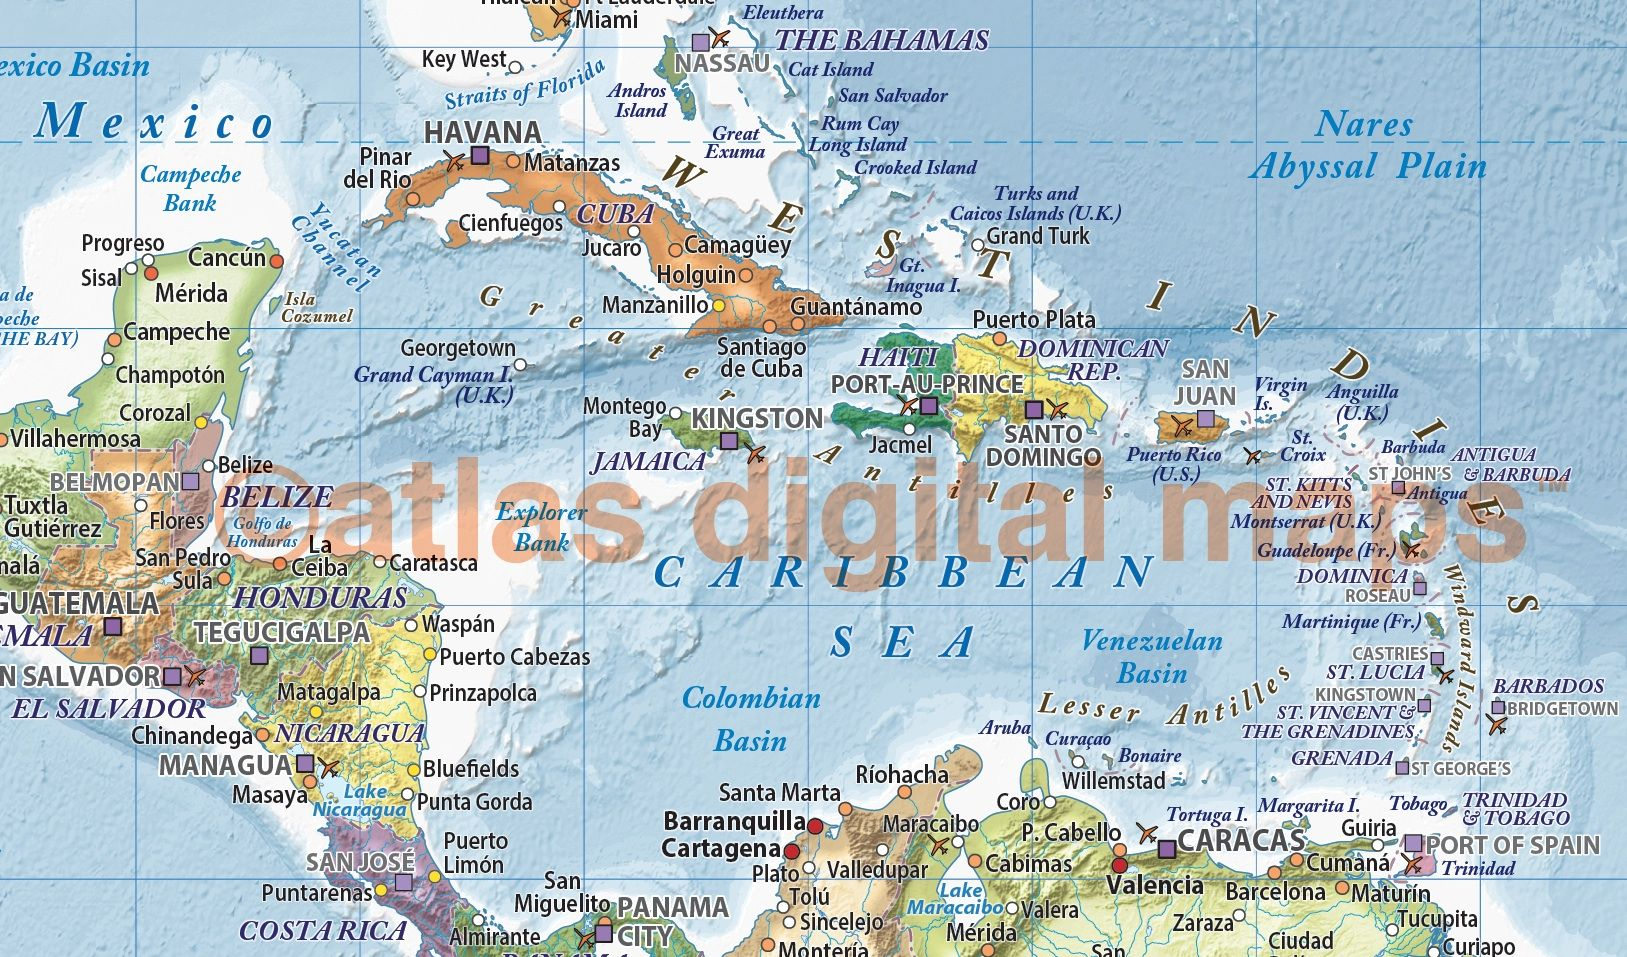 Political and ocean relief map of central america in medium colours canvas world wall map wide x deep a unique and classic fine quality political world map with light colours ocean floor contour relief gumiabroncs Images